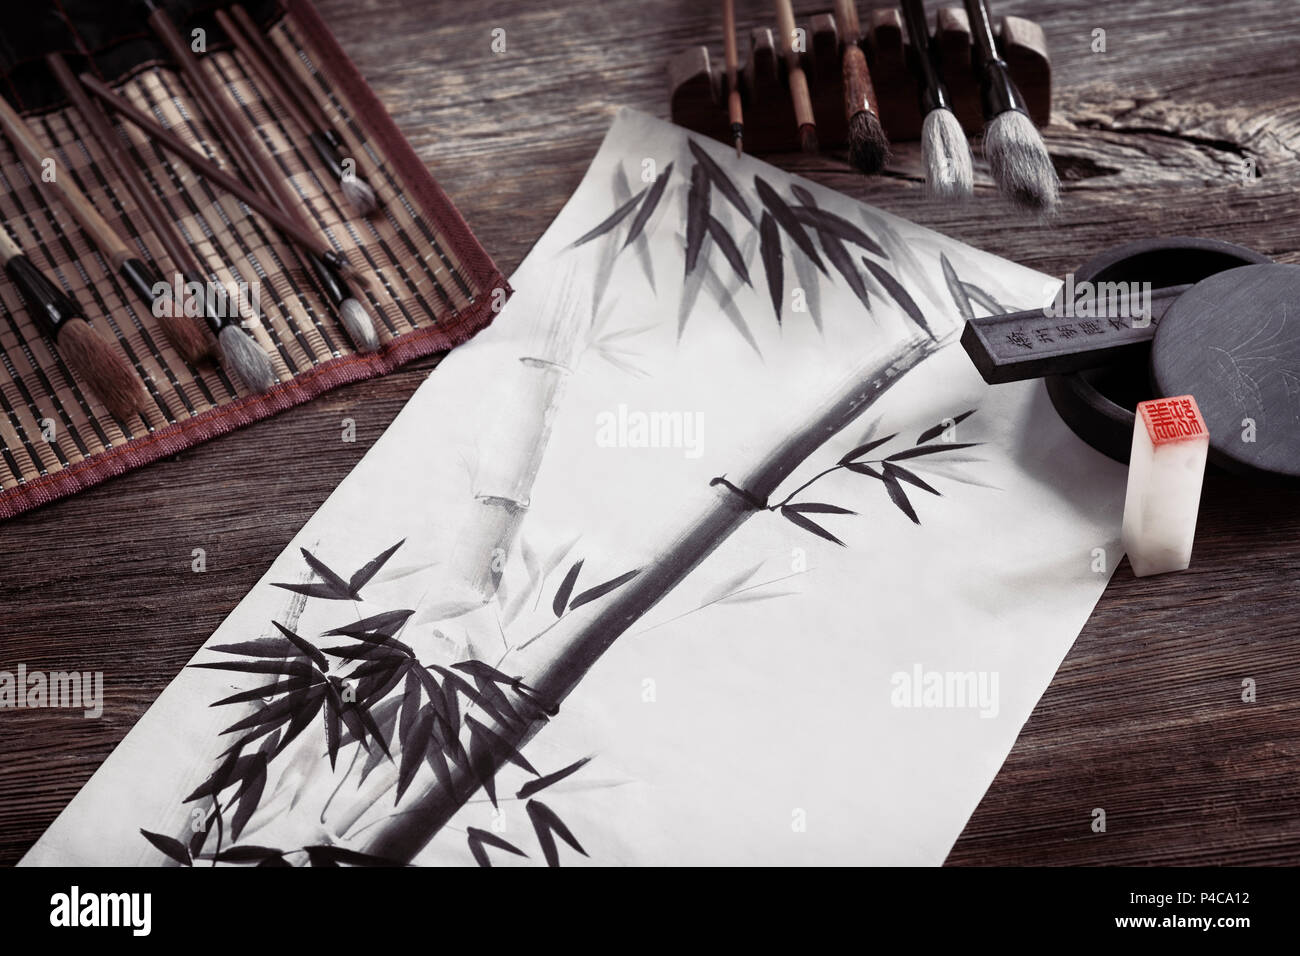 Japanese sumi-e painting of a bamboo on rice paper and artist tools, brushes, ink stone and seal, artistic still life on rustic wood background - Stock Image